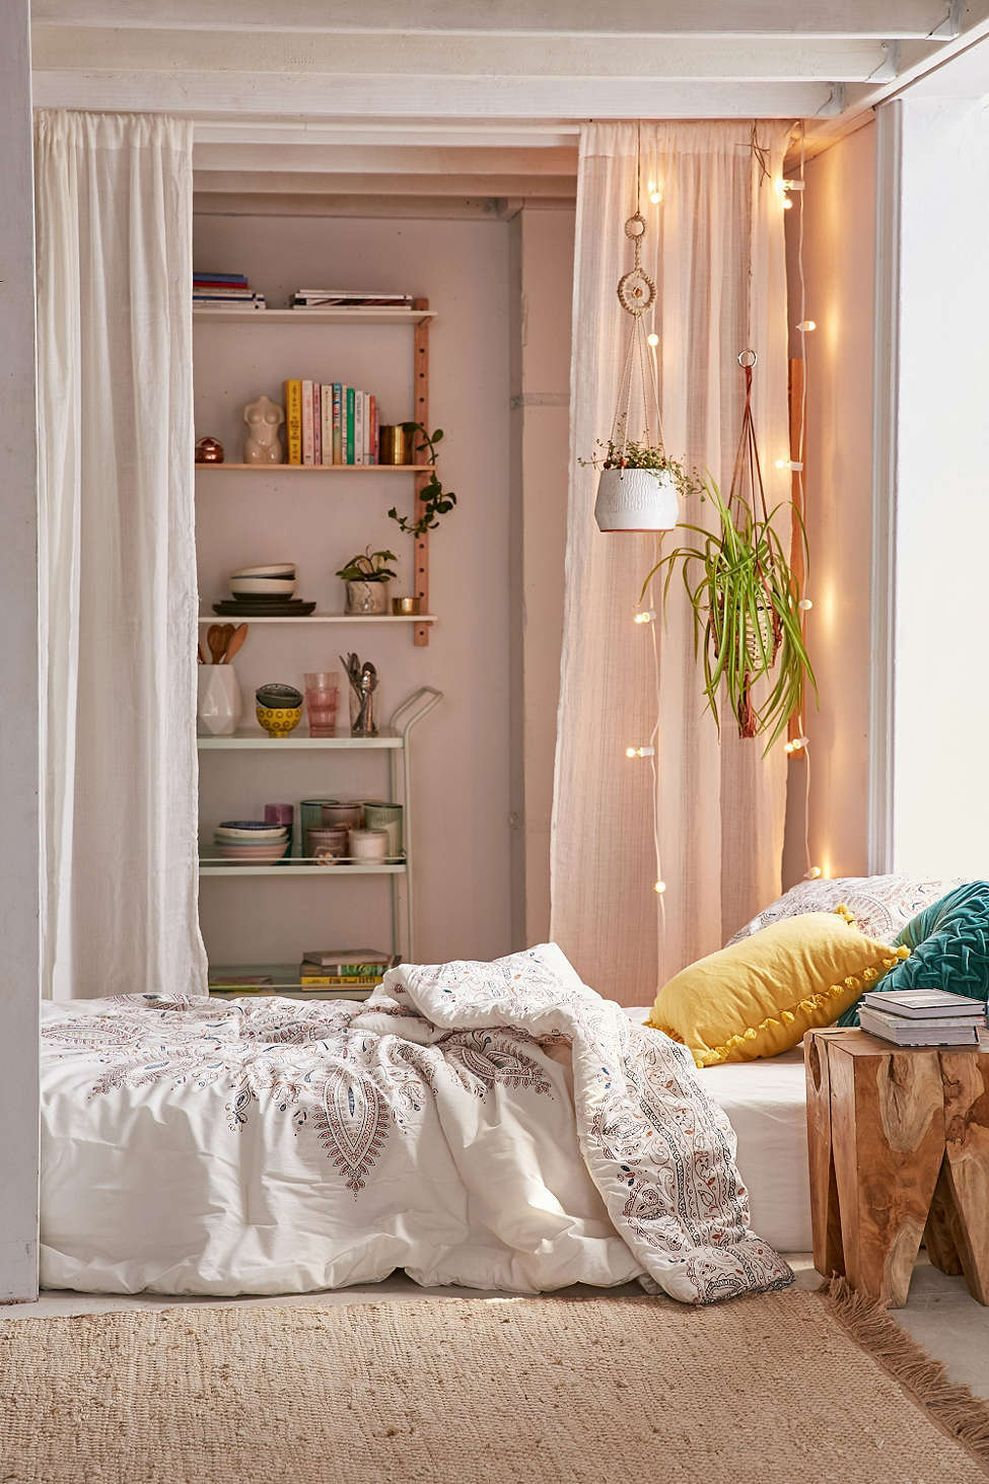 awesome teen bedroom decorating ideas as curtain design   Pin by SeragiDecor.com on Bedroom Design Ideas   Urban ...